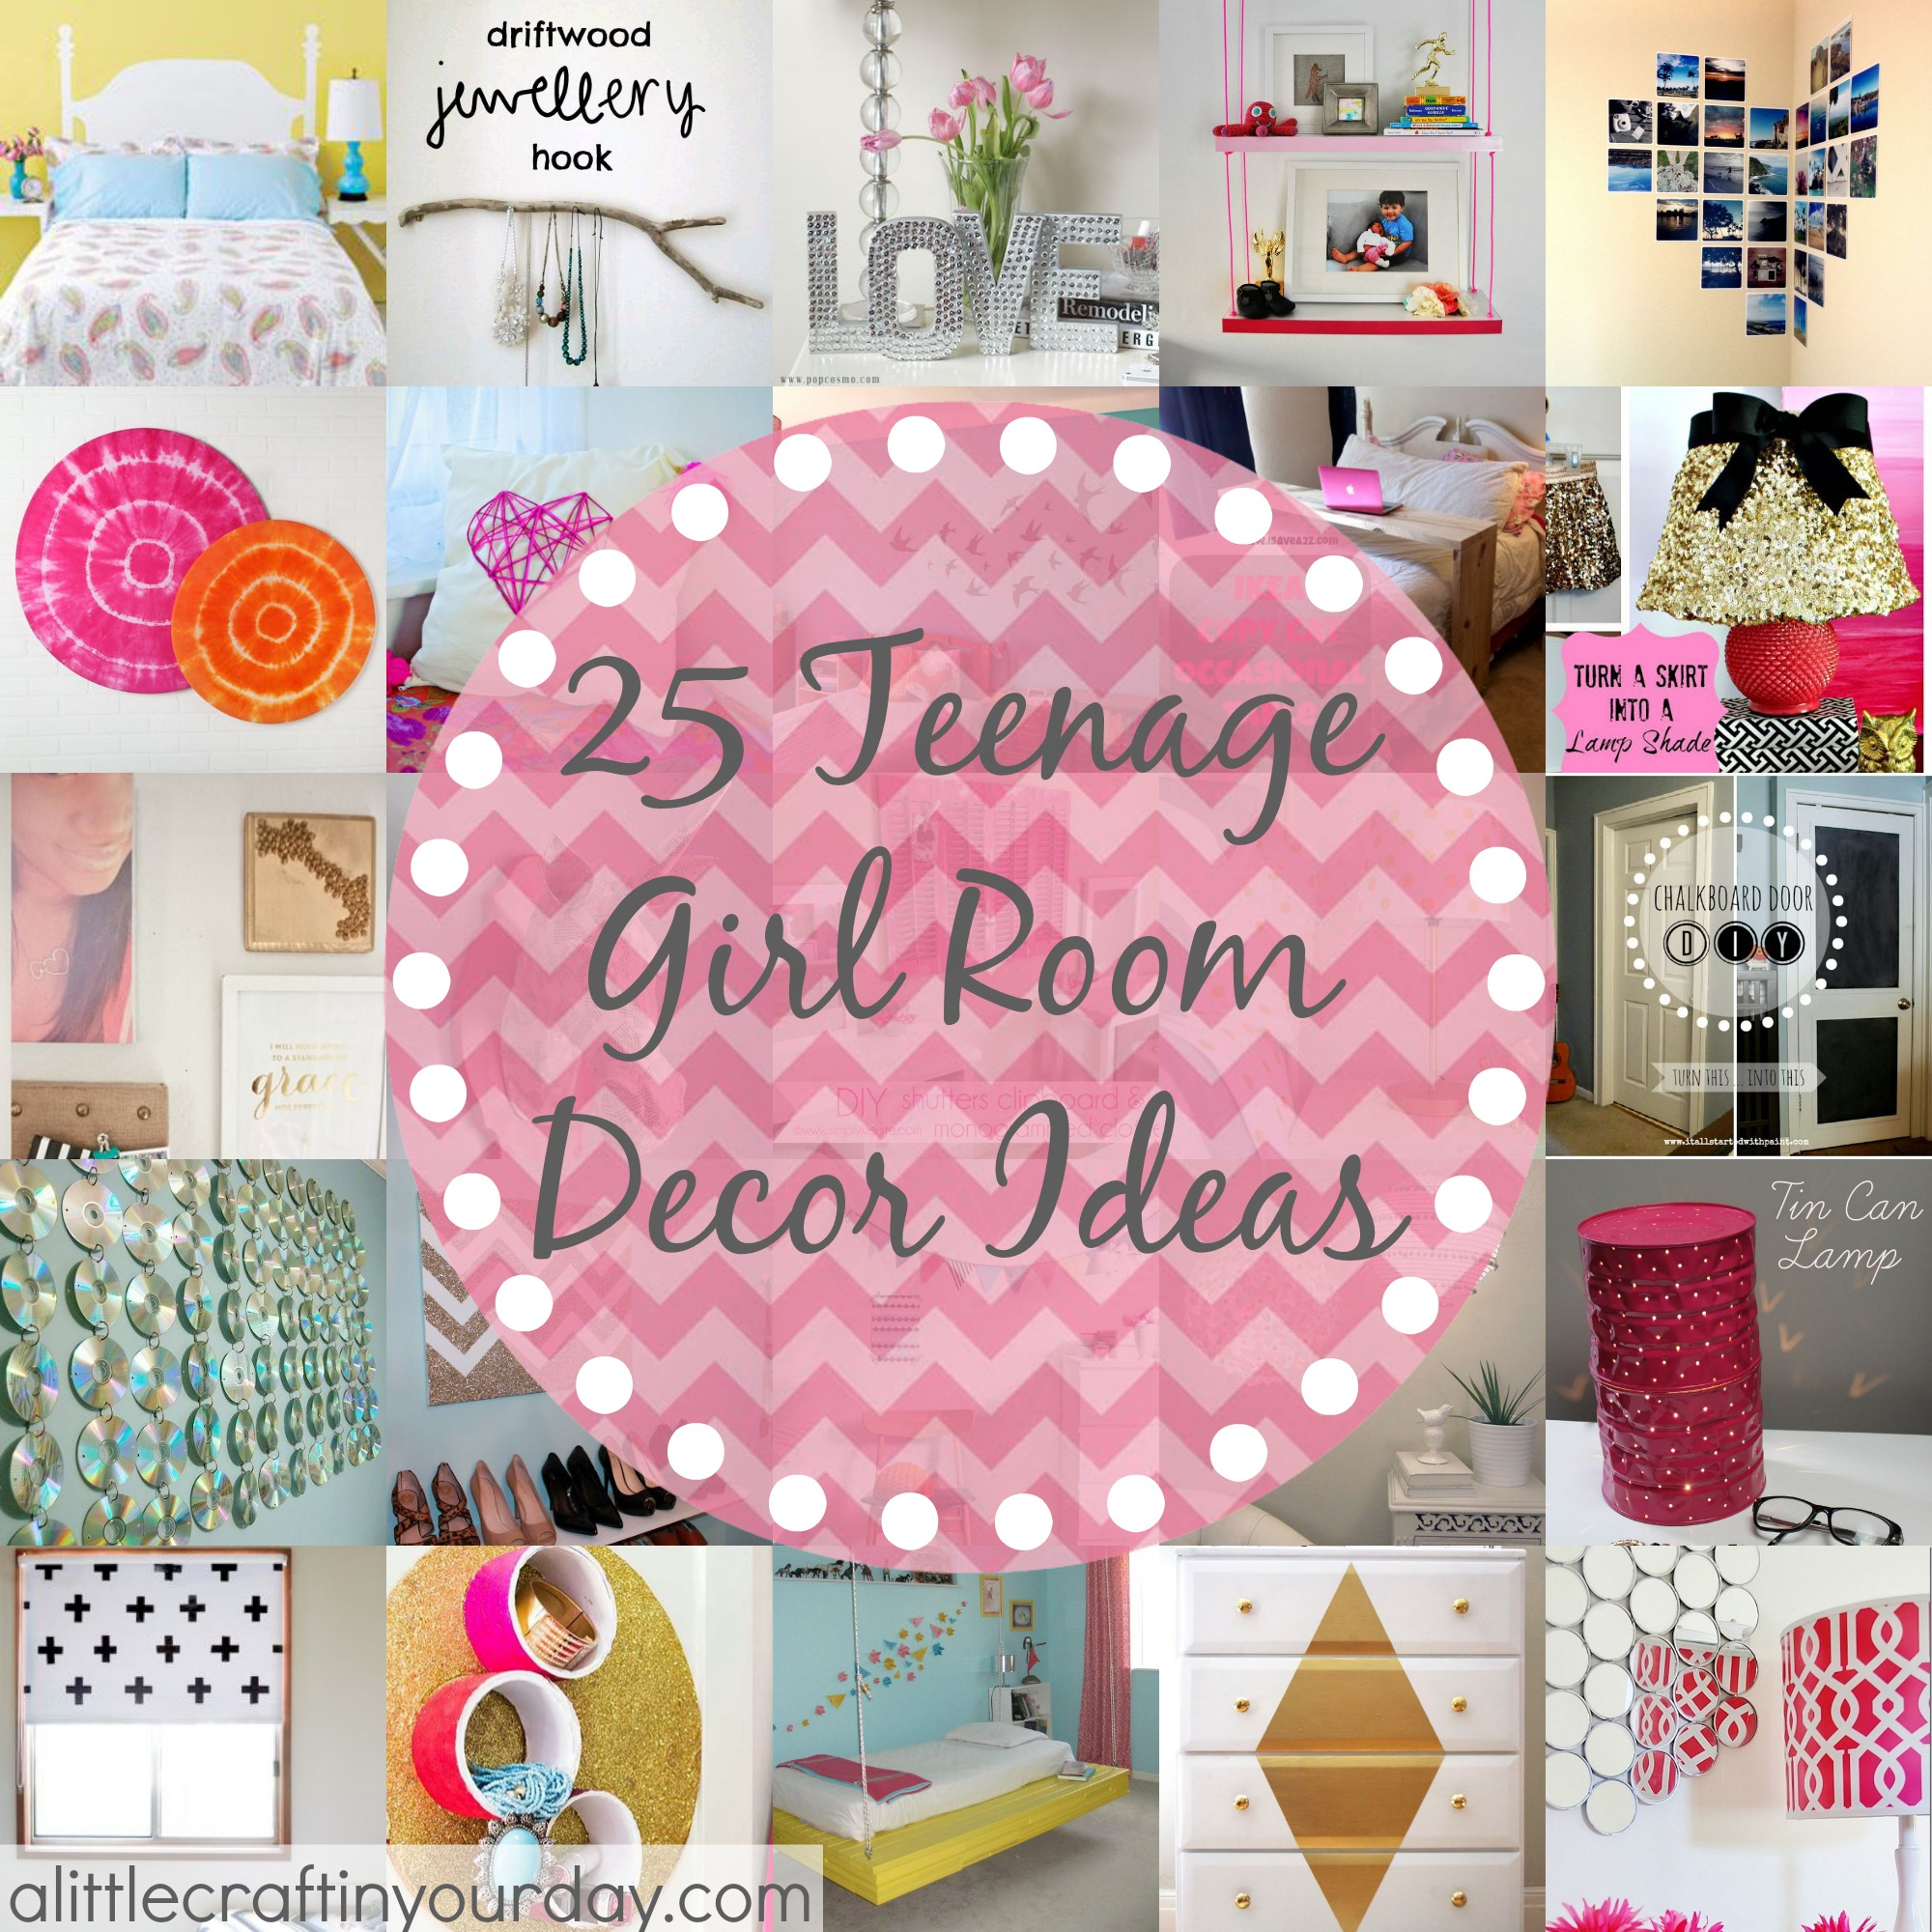 Teenage Room Decorating Ideas 25 more teenage girl room decor ideas - a little craft in your day